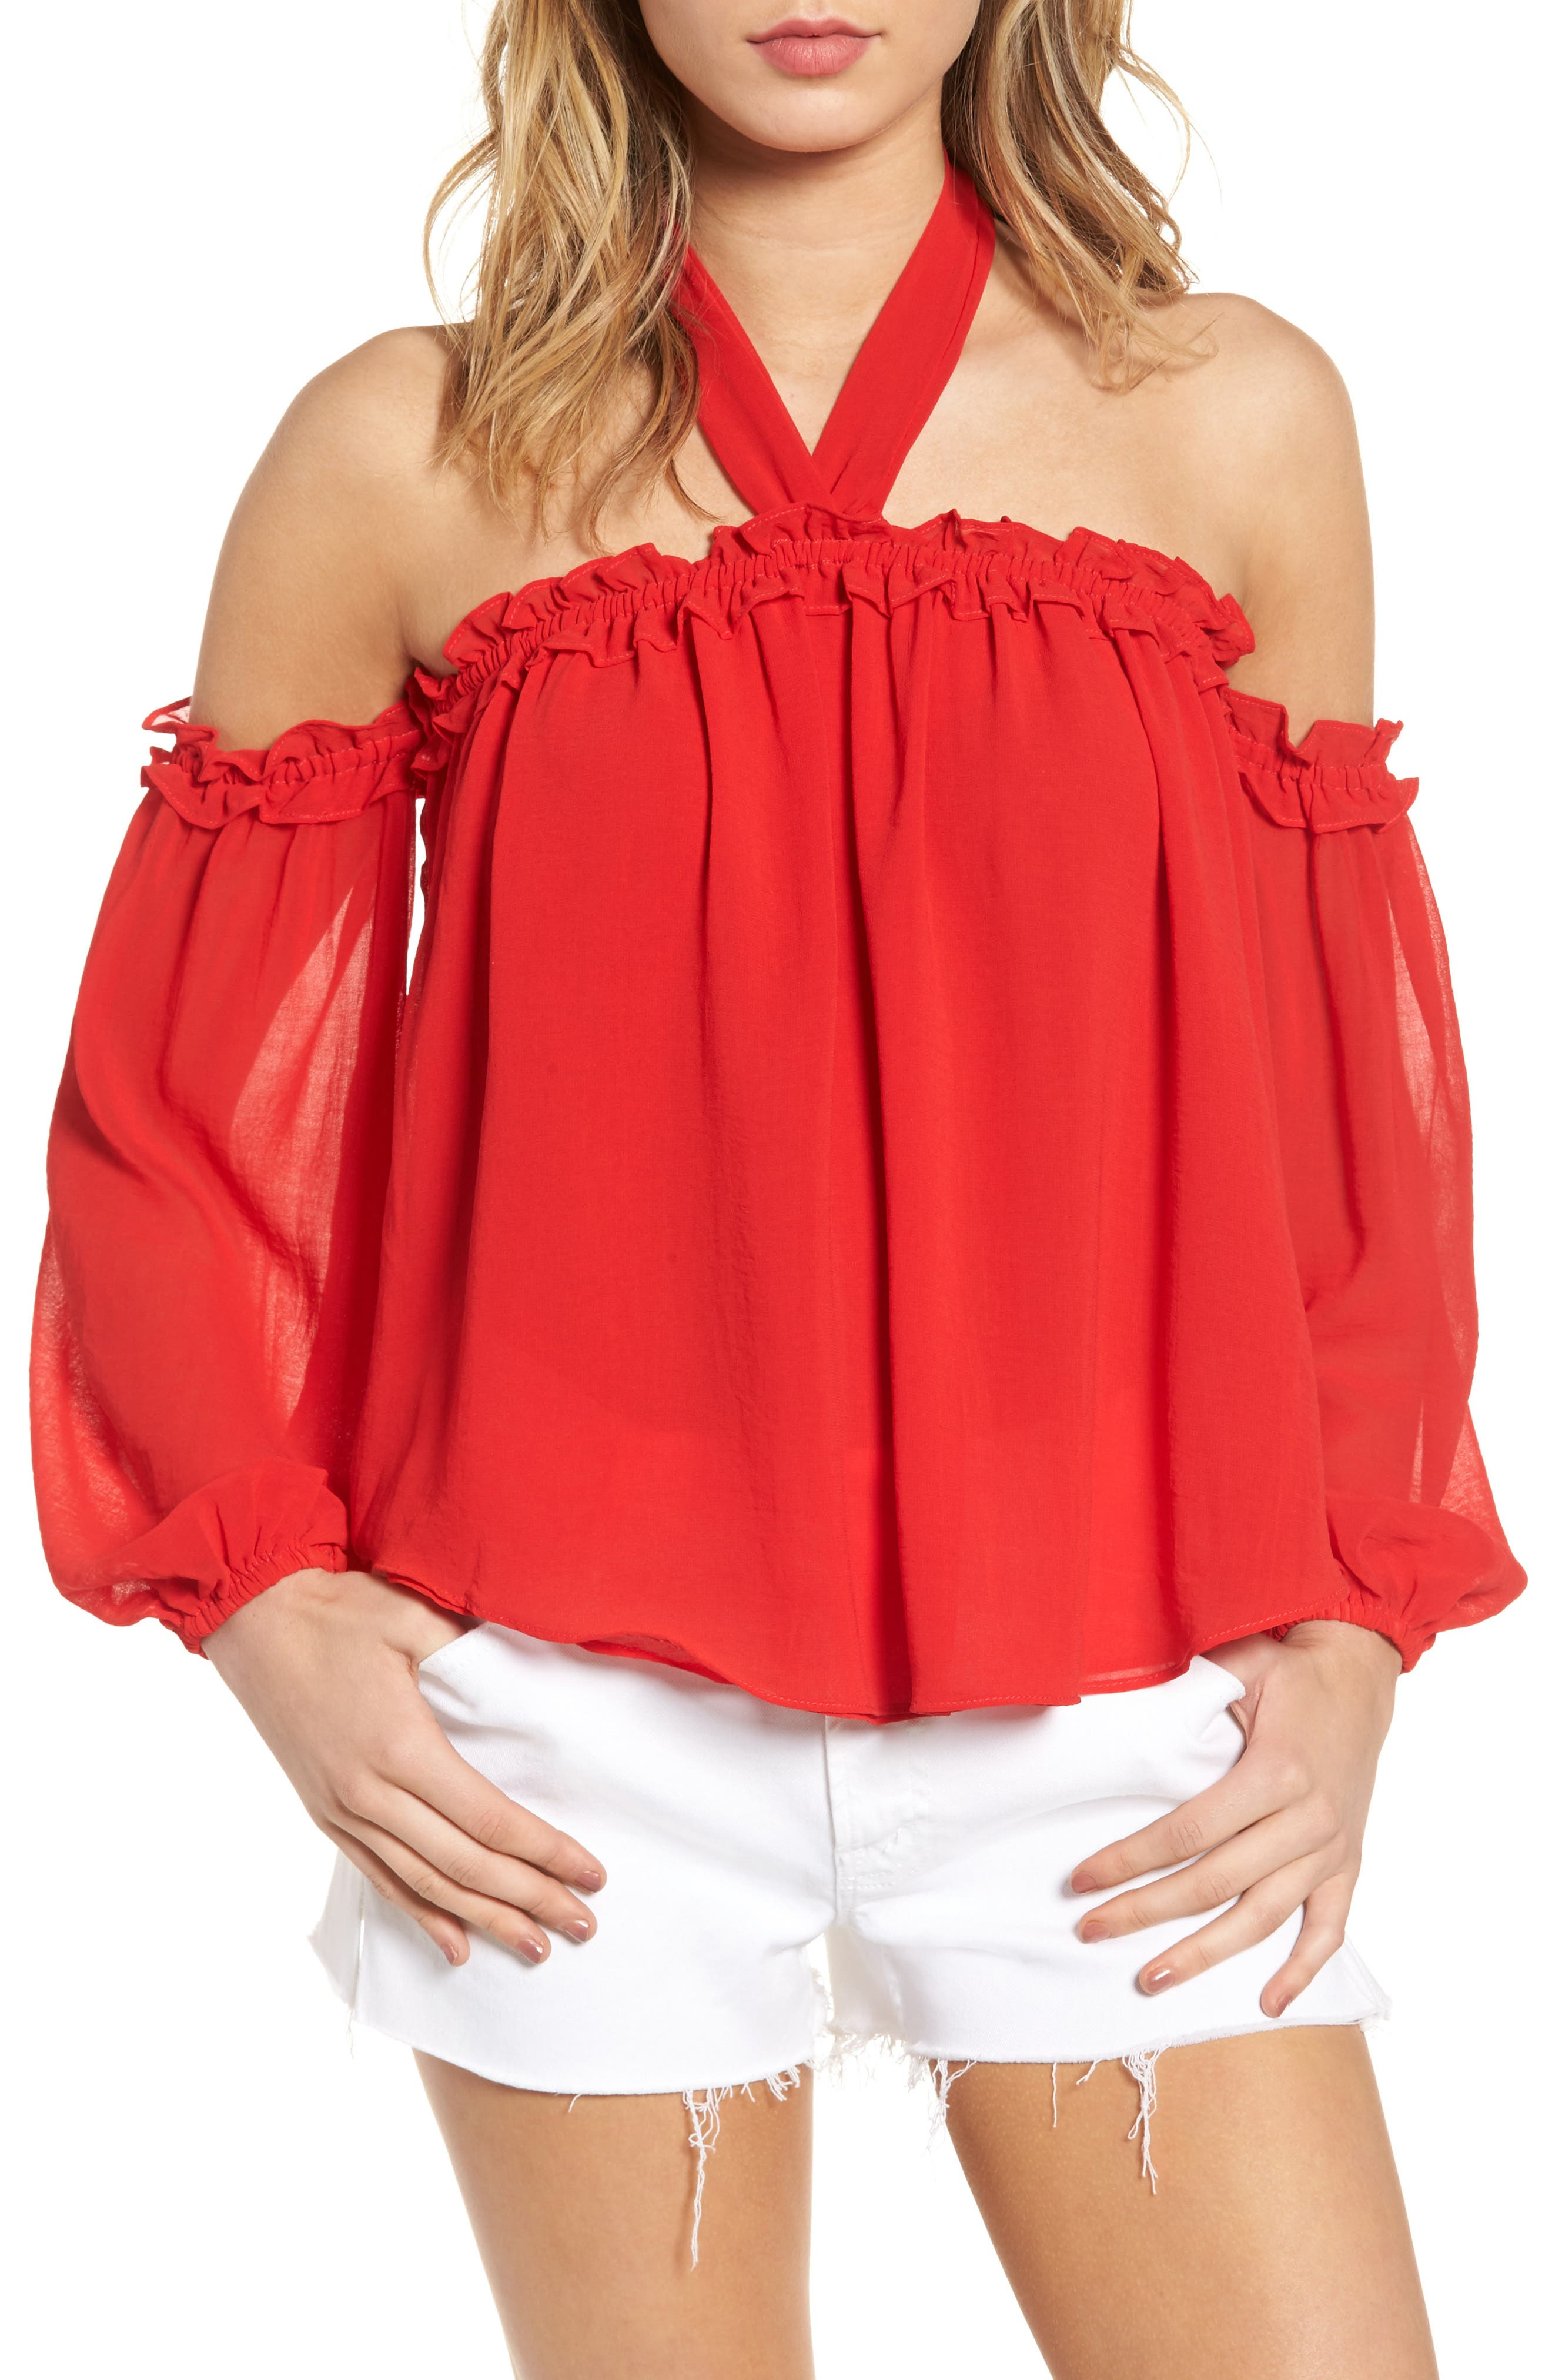 Lively Off the Shoulder Top,                             Main thumbnail 1, color,                             600